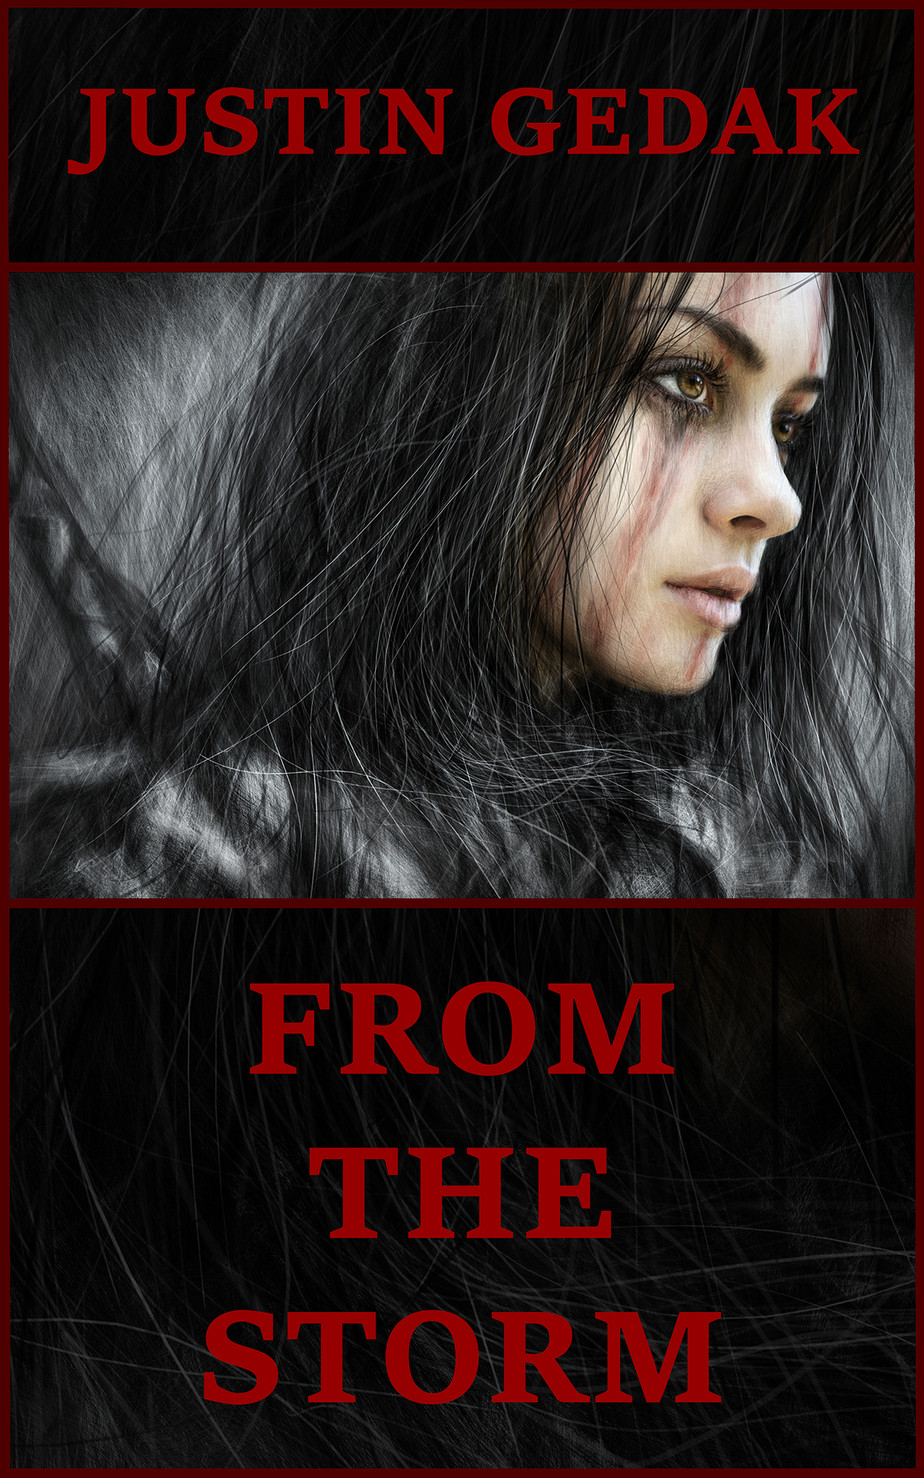 From the Storm: A Gothic Fantasy Short Story